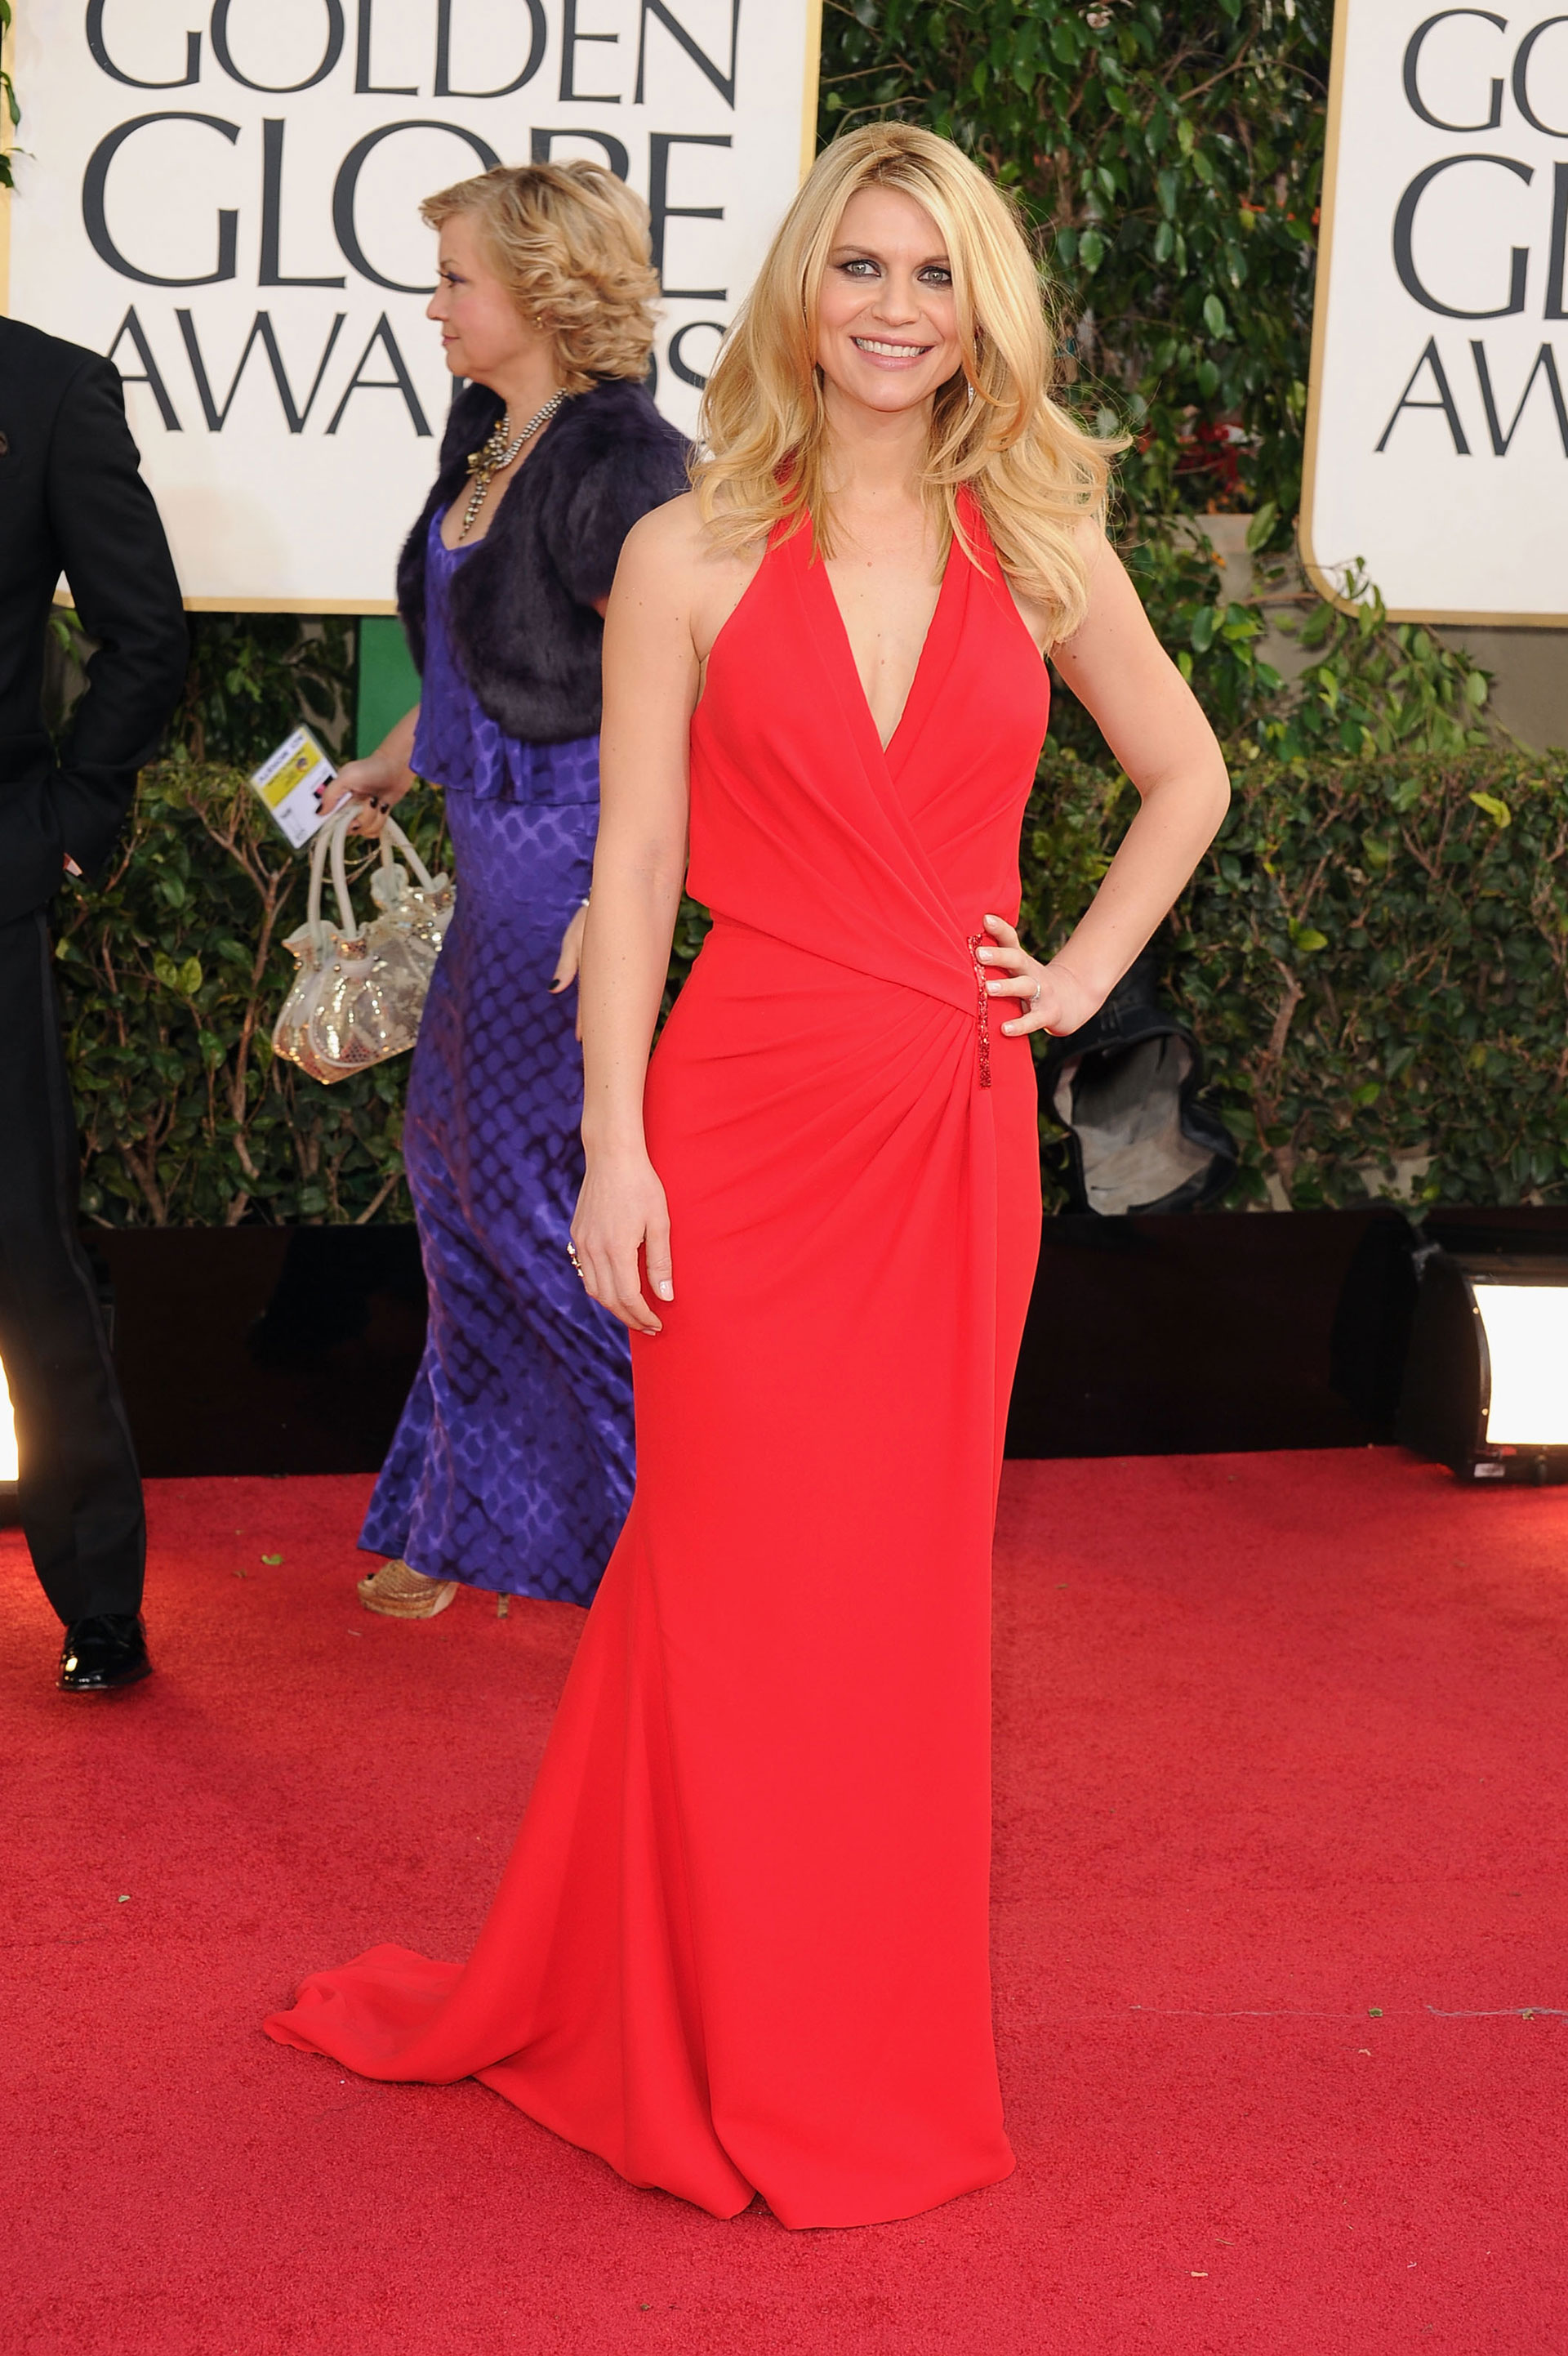 Globes 2013 Best Dressed Golden Globe Awards Red Carpet Fashion